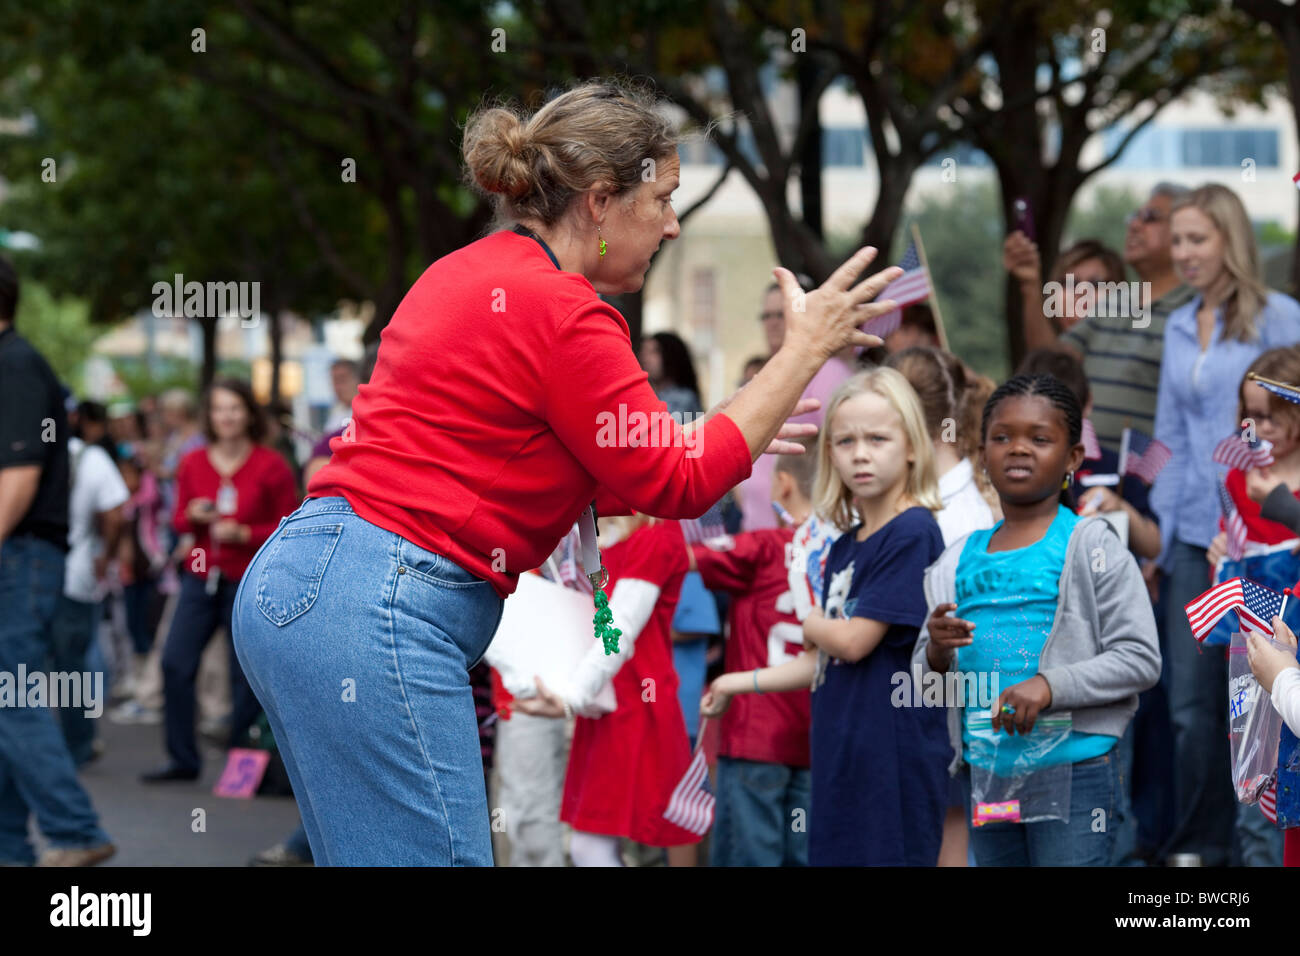 A teacher tries to prevent schoolchildren from entering the street at the annual Veteran's Day parade - Stock Image